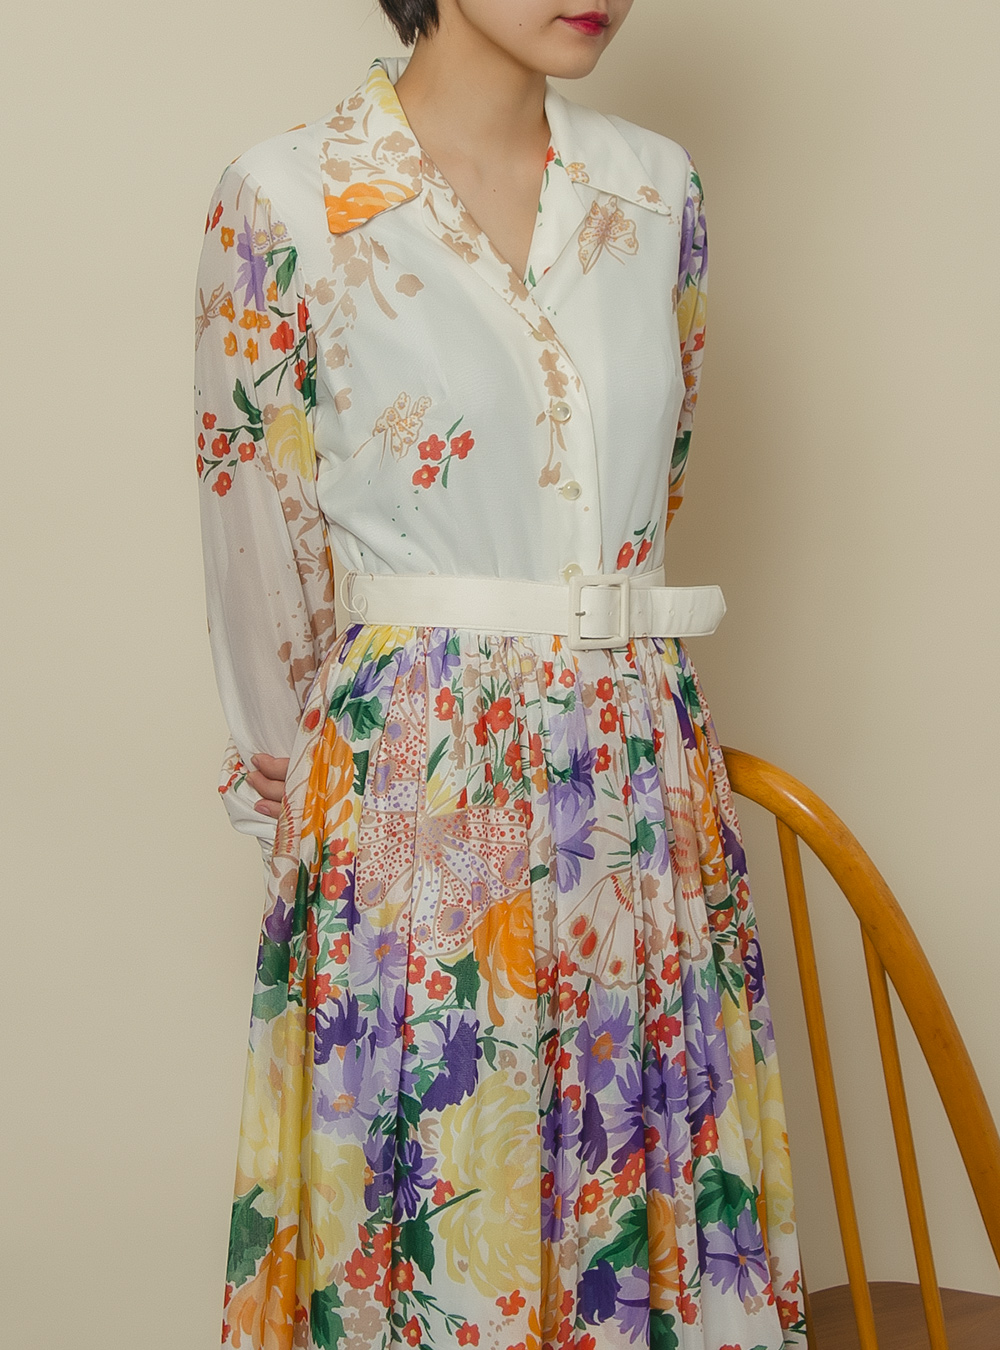 1970's White Design Art Flower Dress